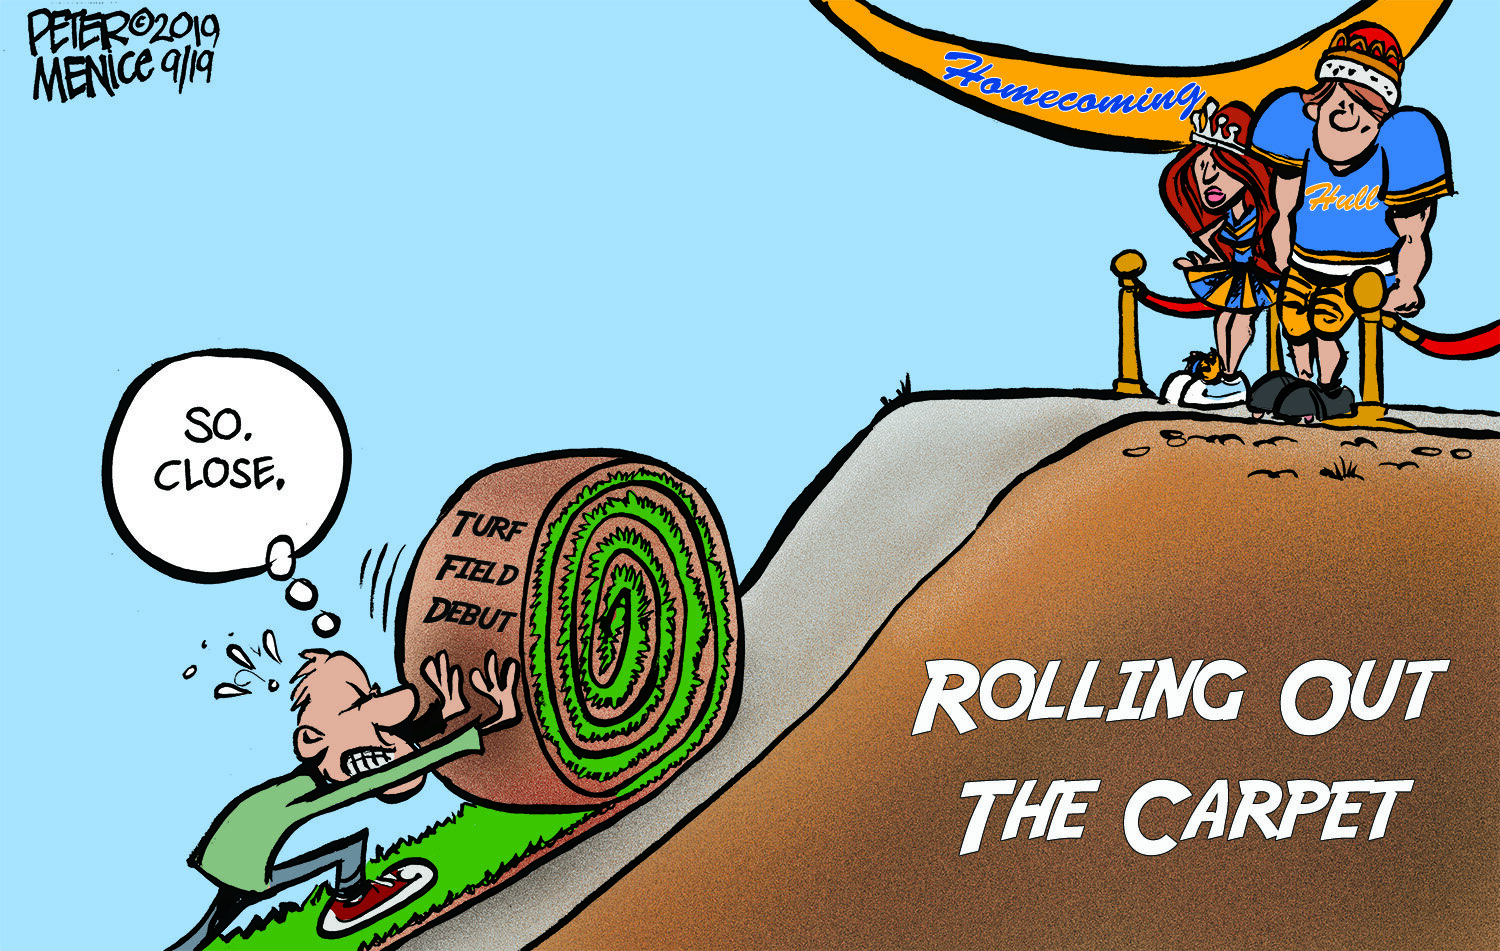 Rolling Out The Carpet.jpg